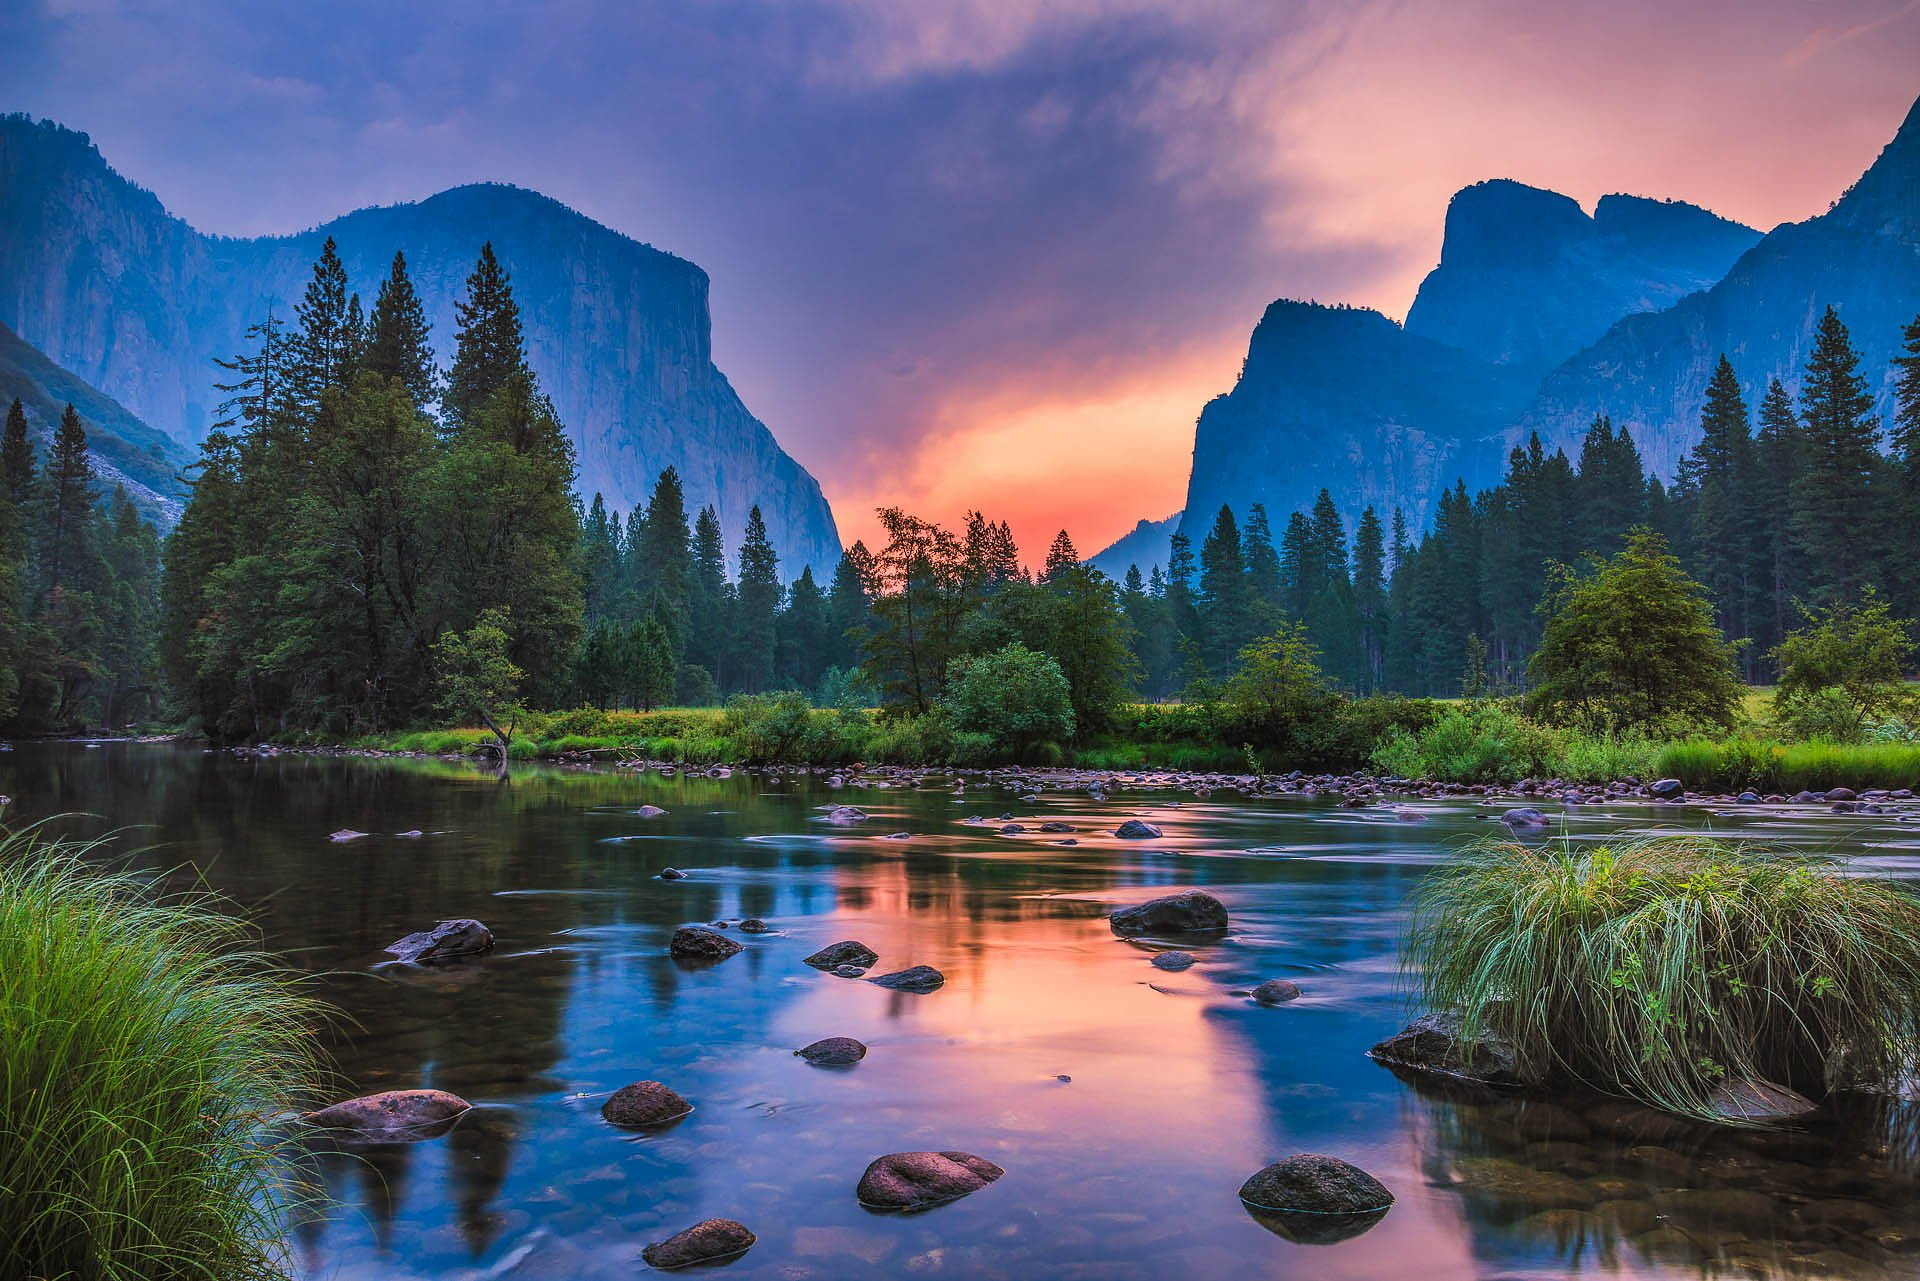 landscape mountains river nature mountain sunset reflection landscapes wallpapers hd valley sunsets amazing views landscaping